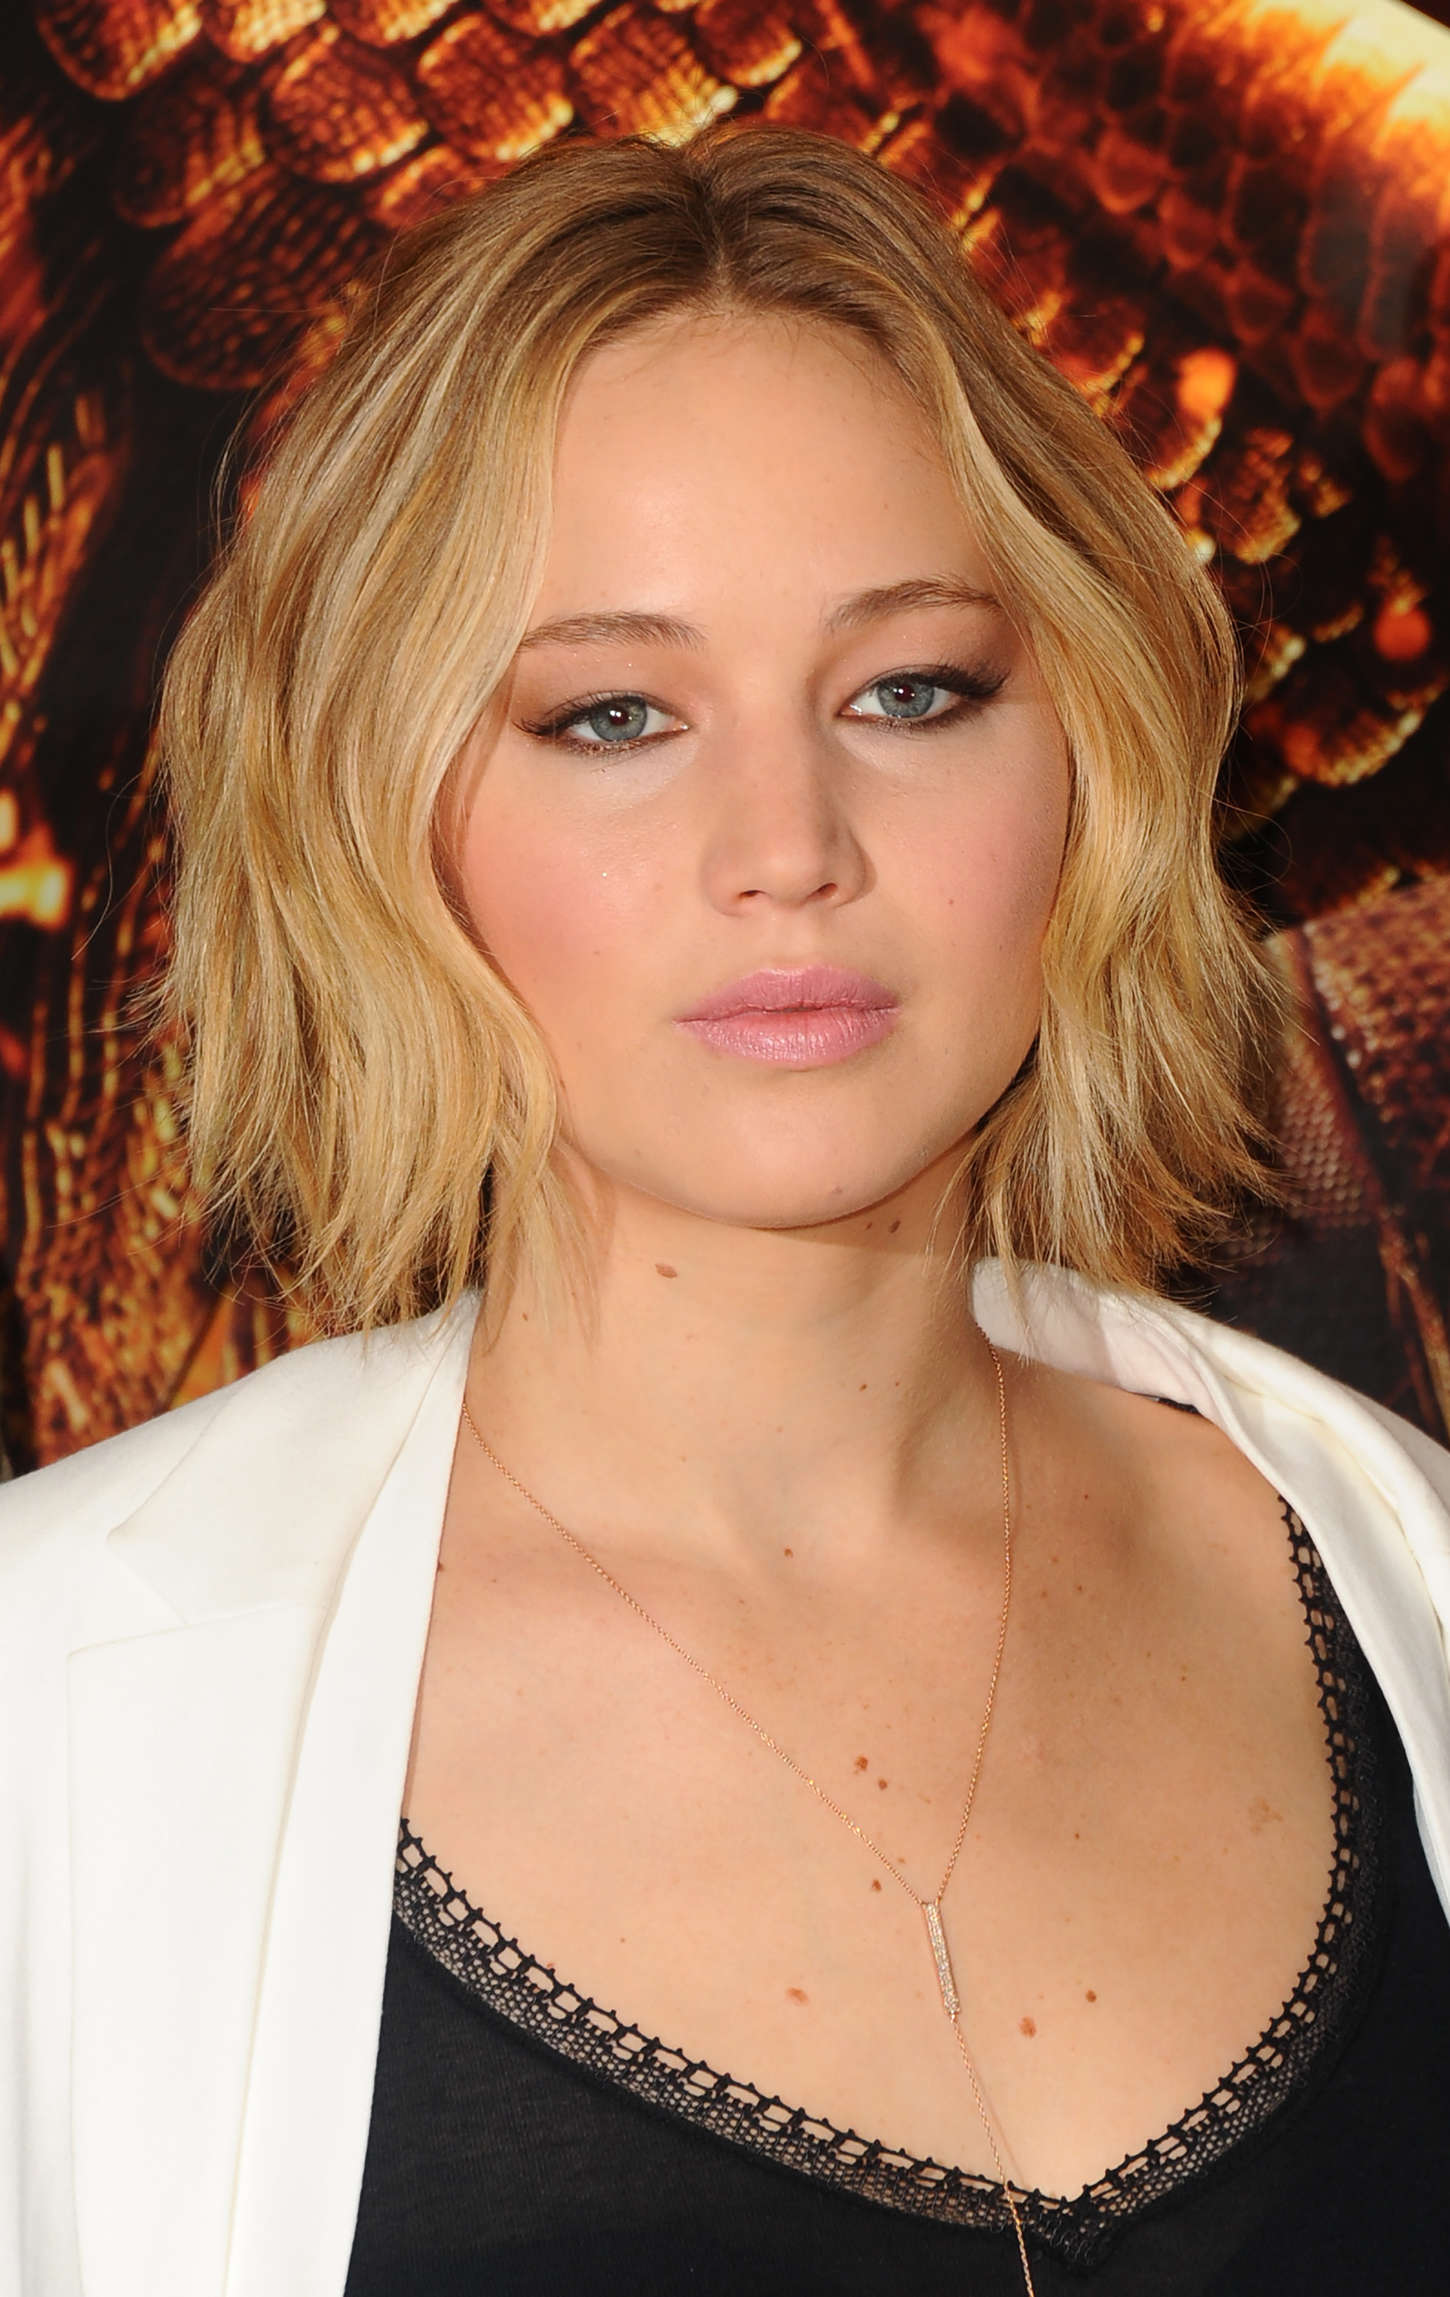 NEW! Jennifer Lawrence Sex Tape - iCloud Leaked VIDEO